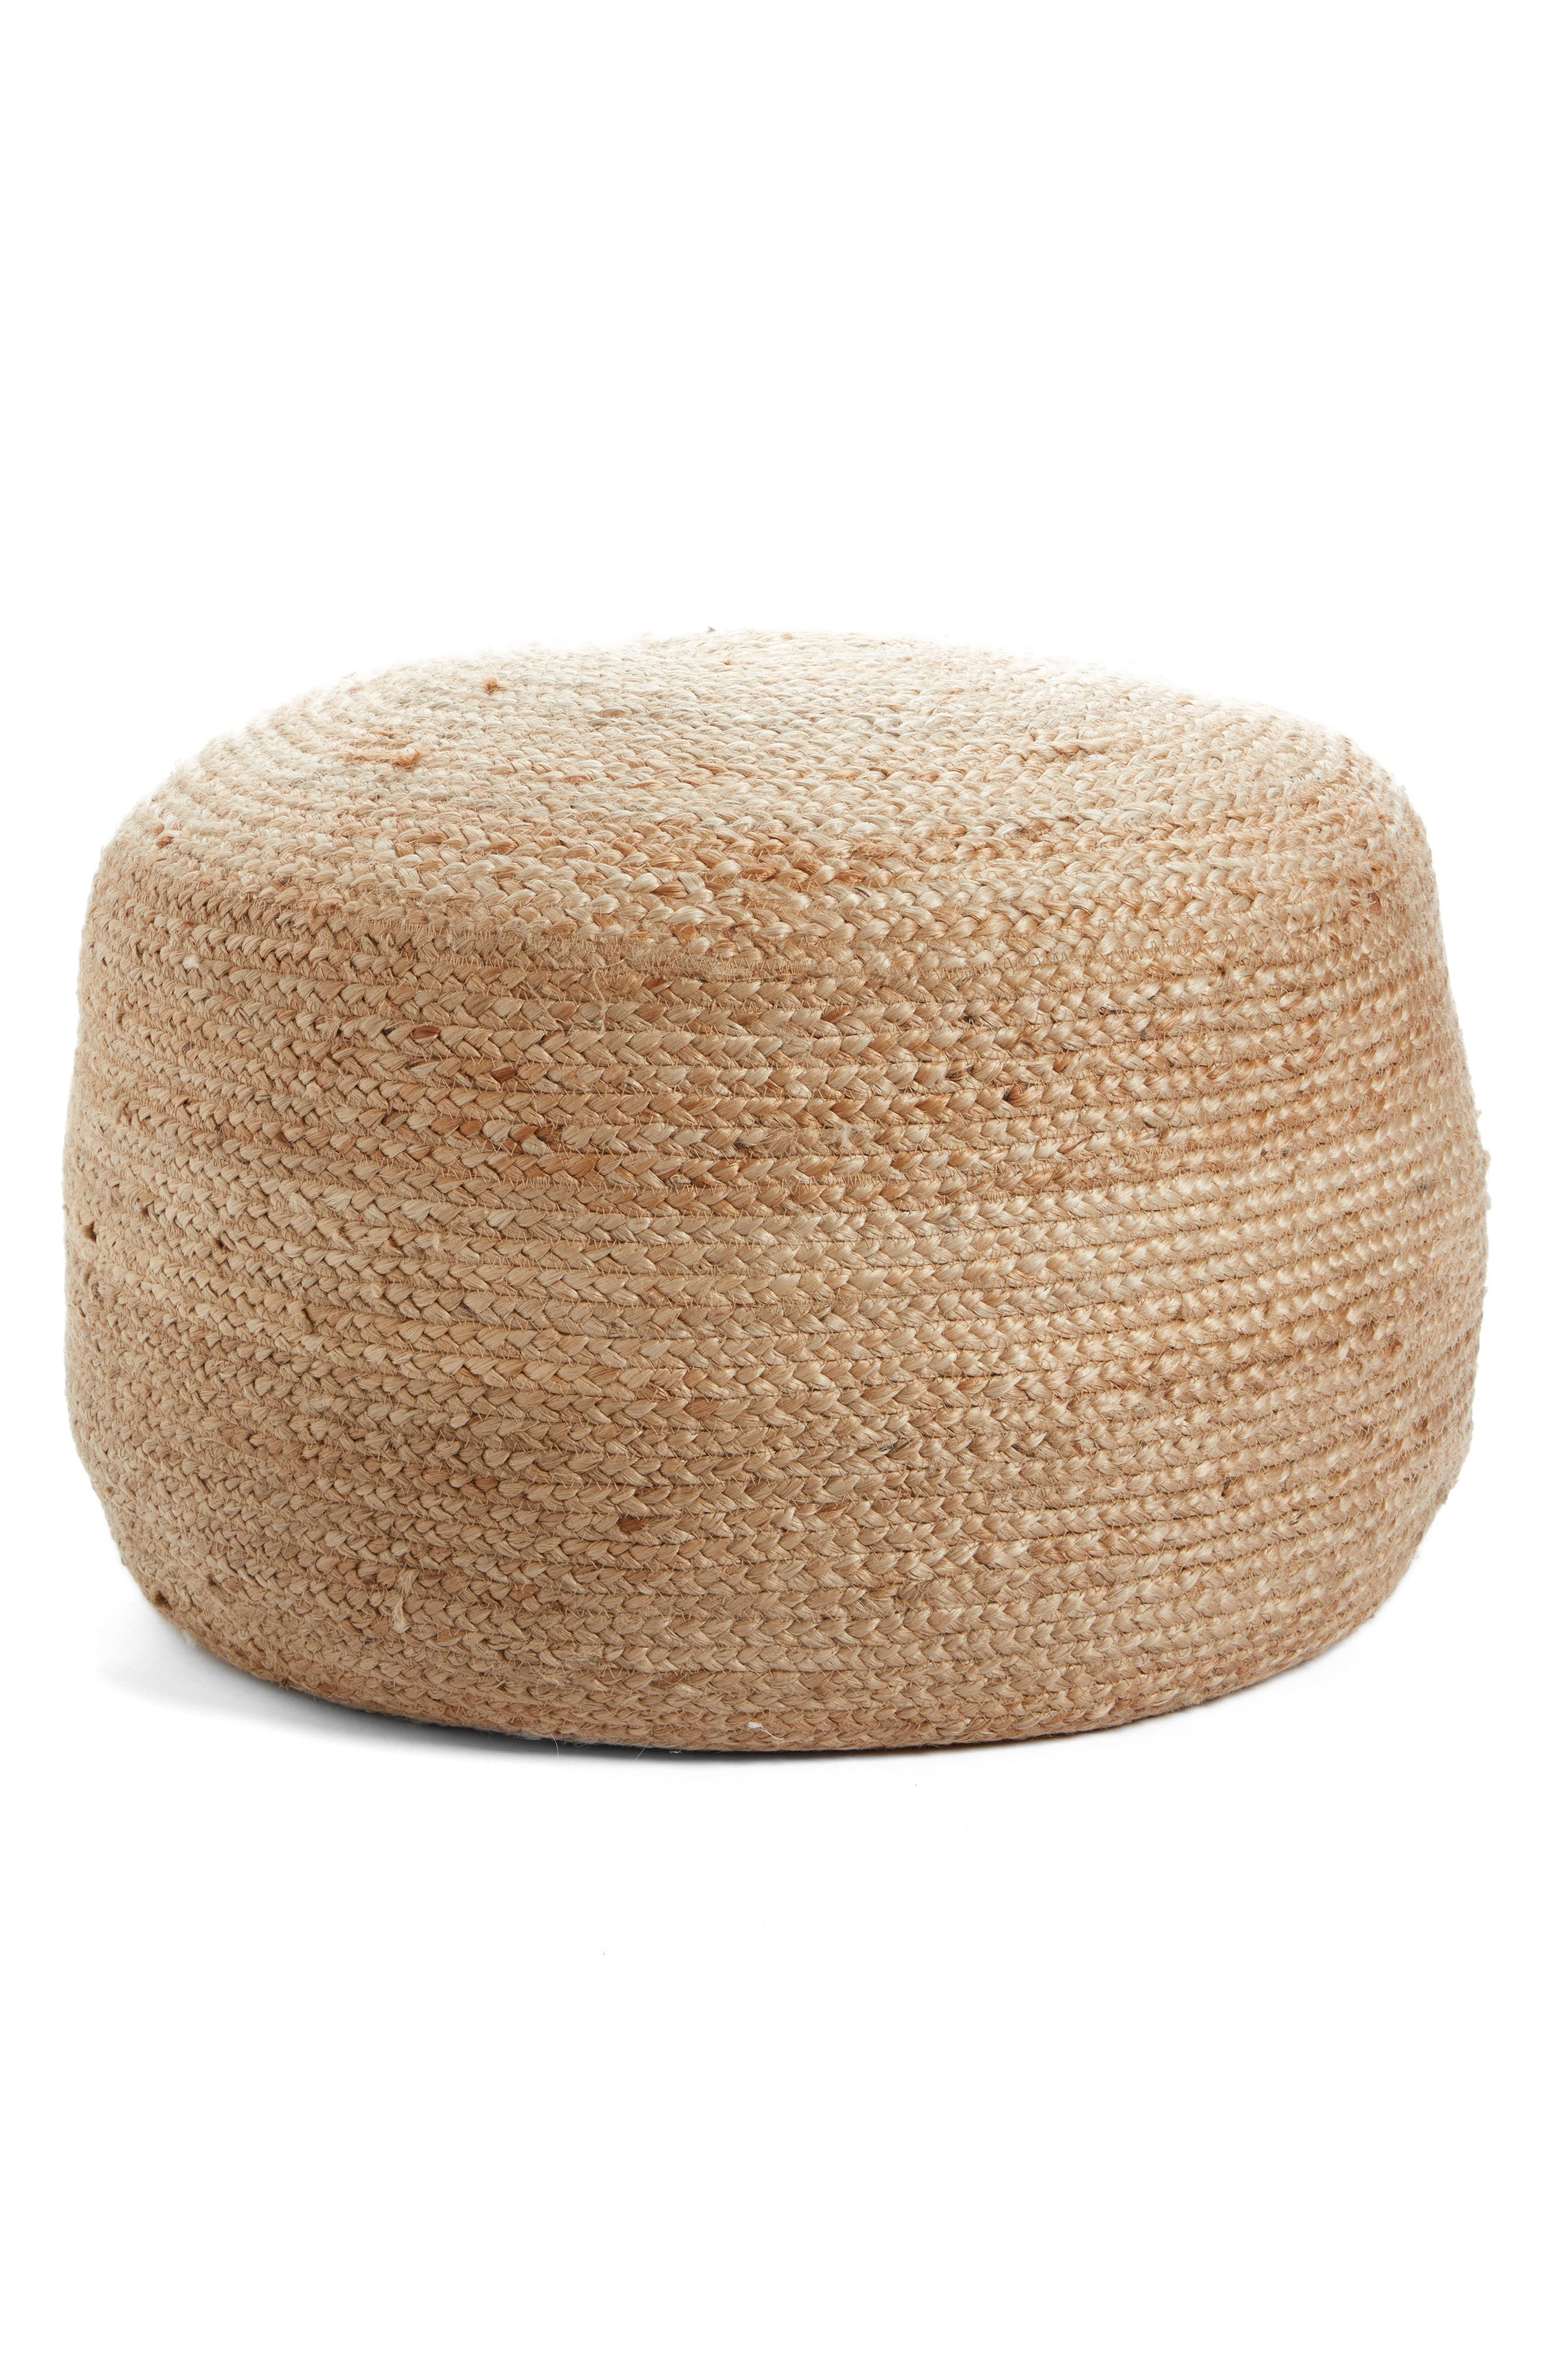 Main Image - Nordstrom at Home Indoor/Outdoor Jute Pouf